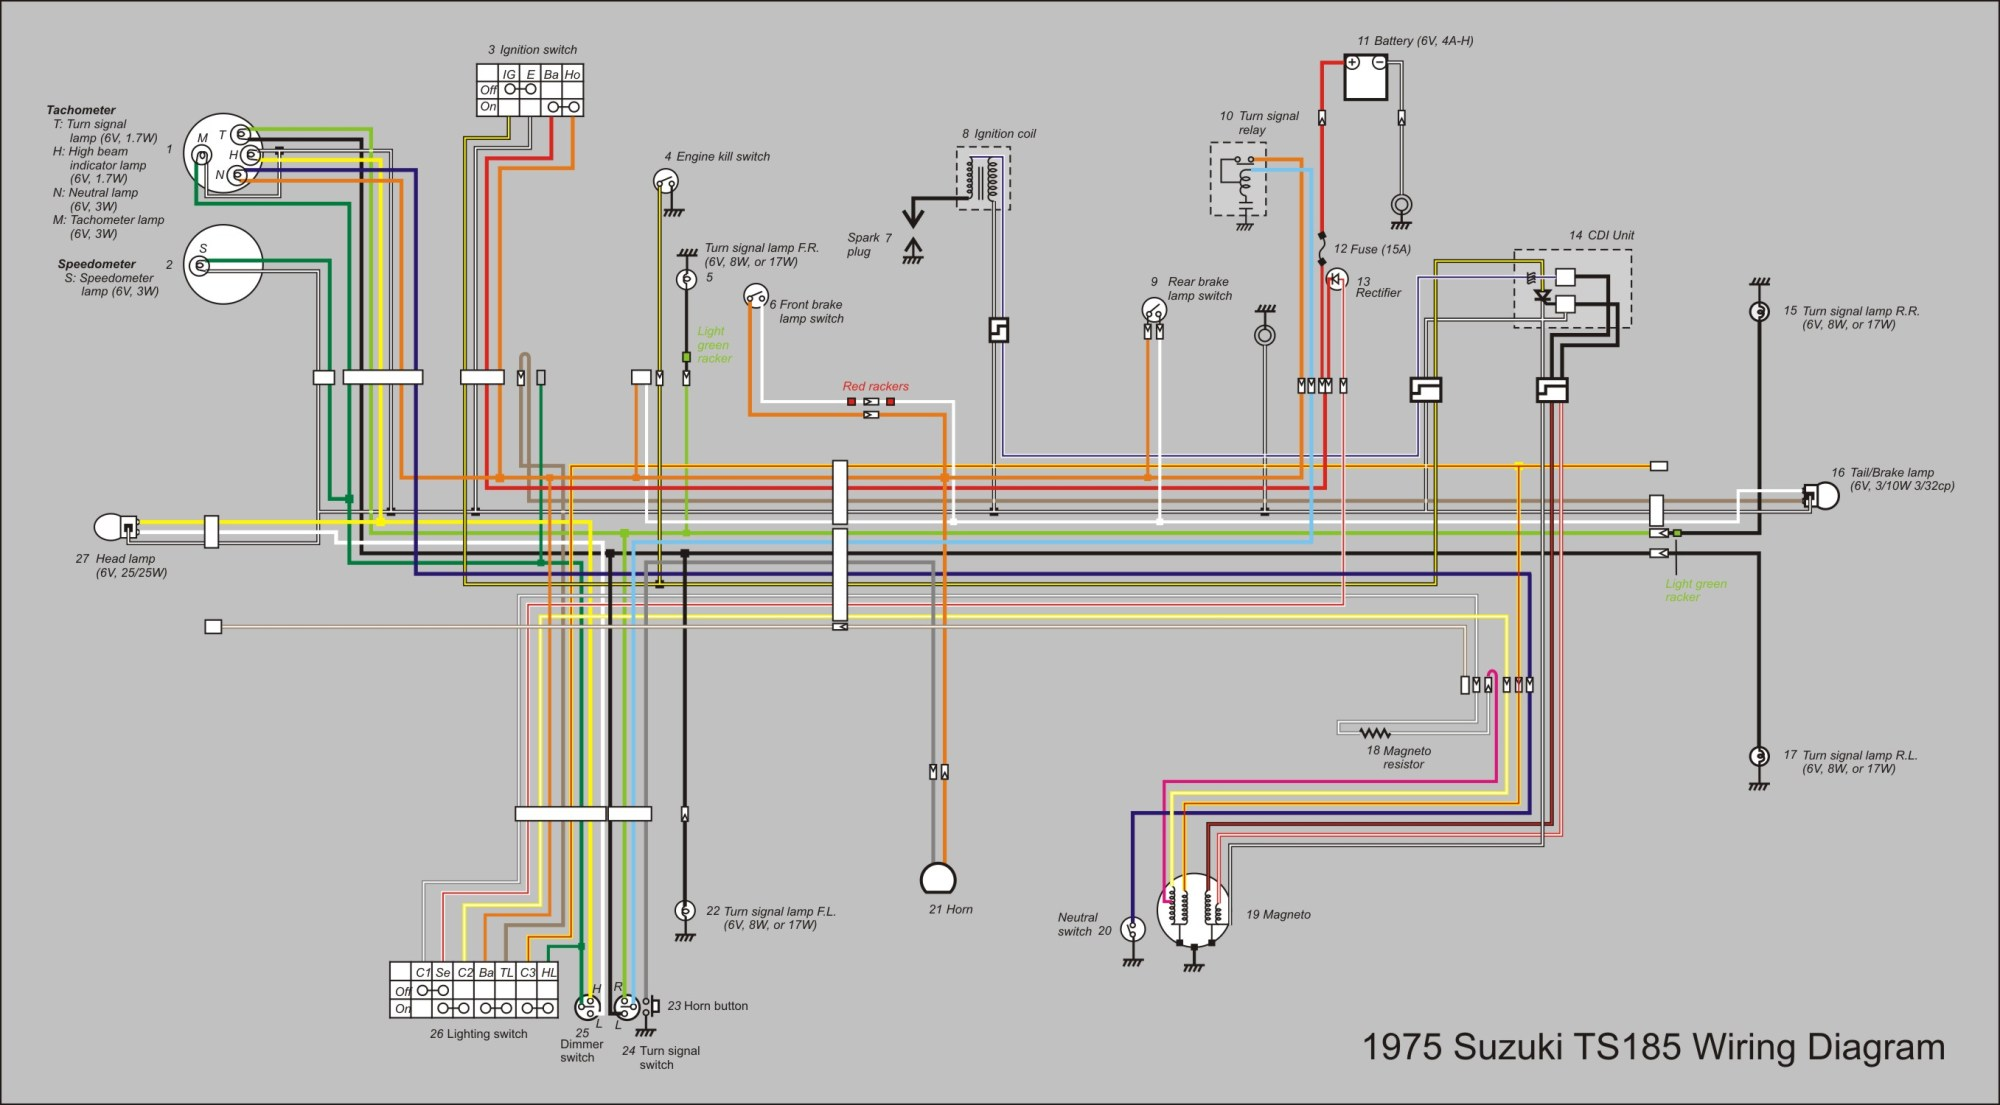 hight resolution of  mustang ignition wiring diagram for 1985 dt75 suzuki outboard on mustang wiring schematic